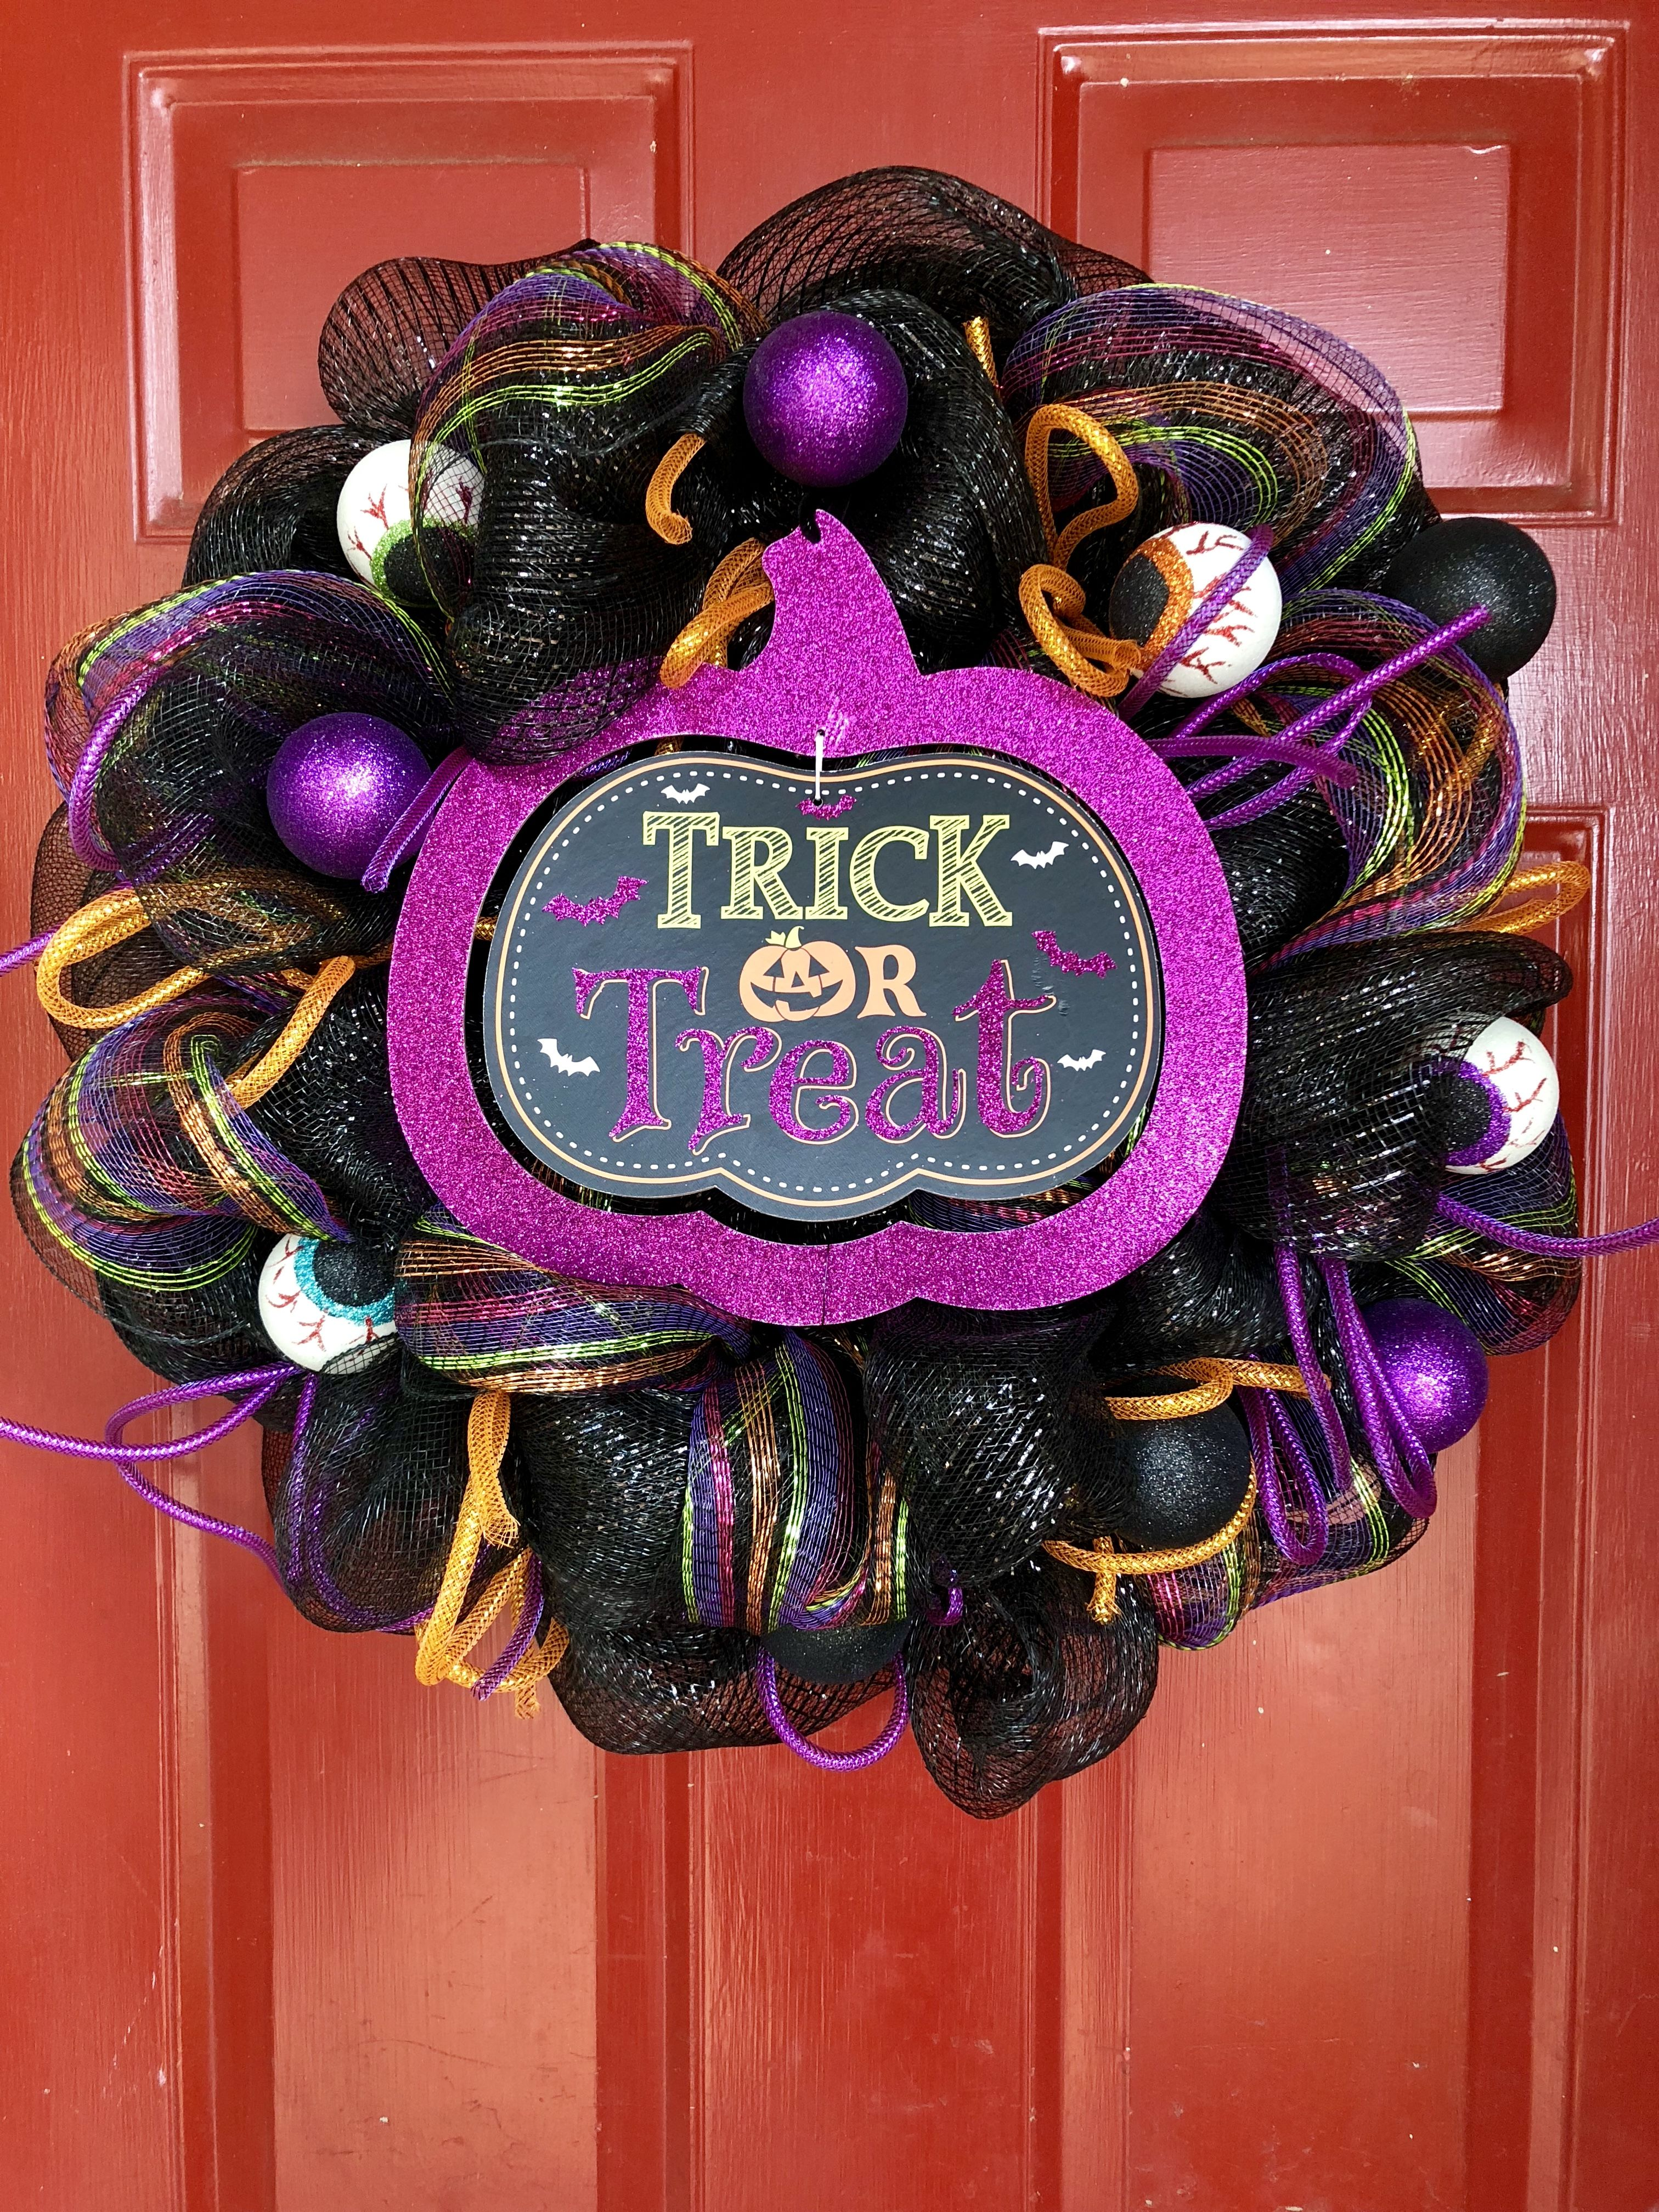 Deco mesh wreath made using tubing and sign from Dollar